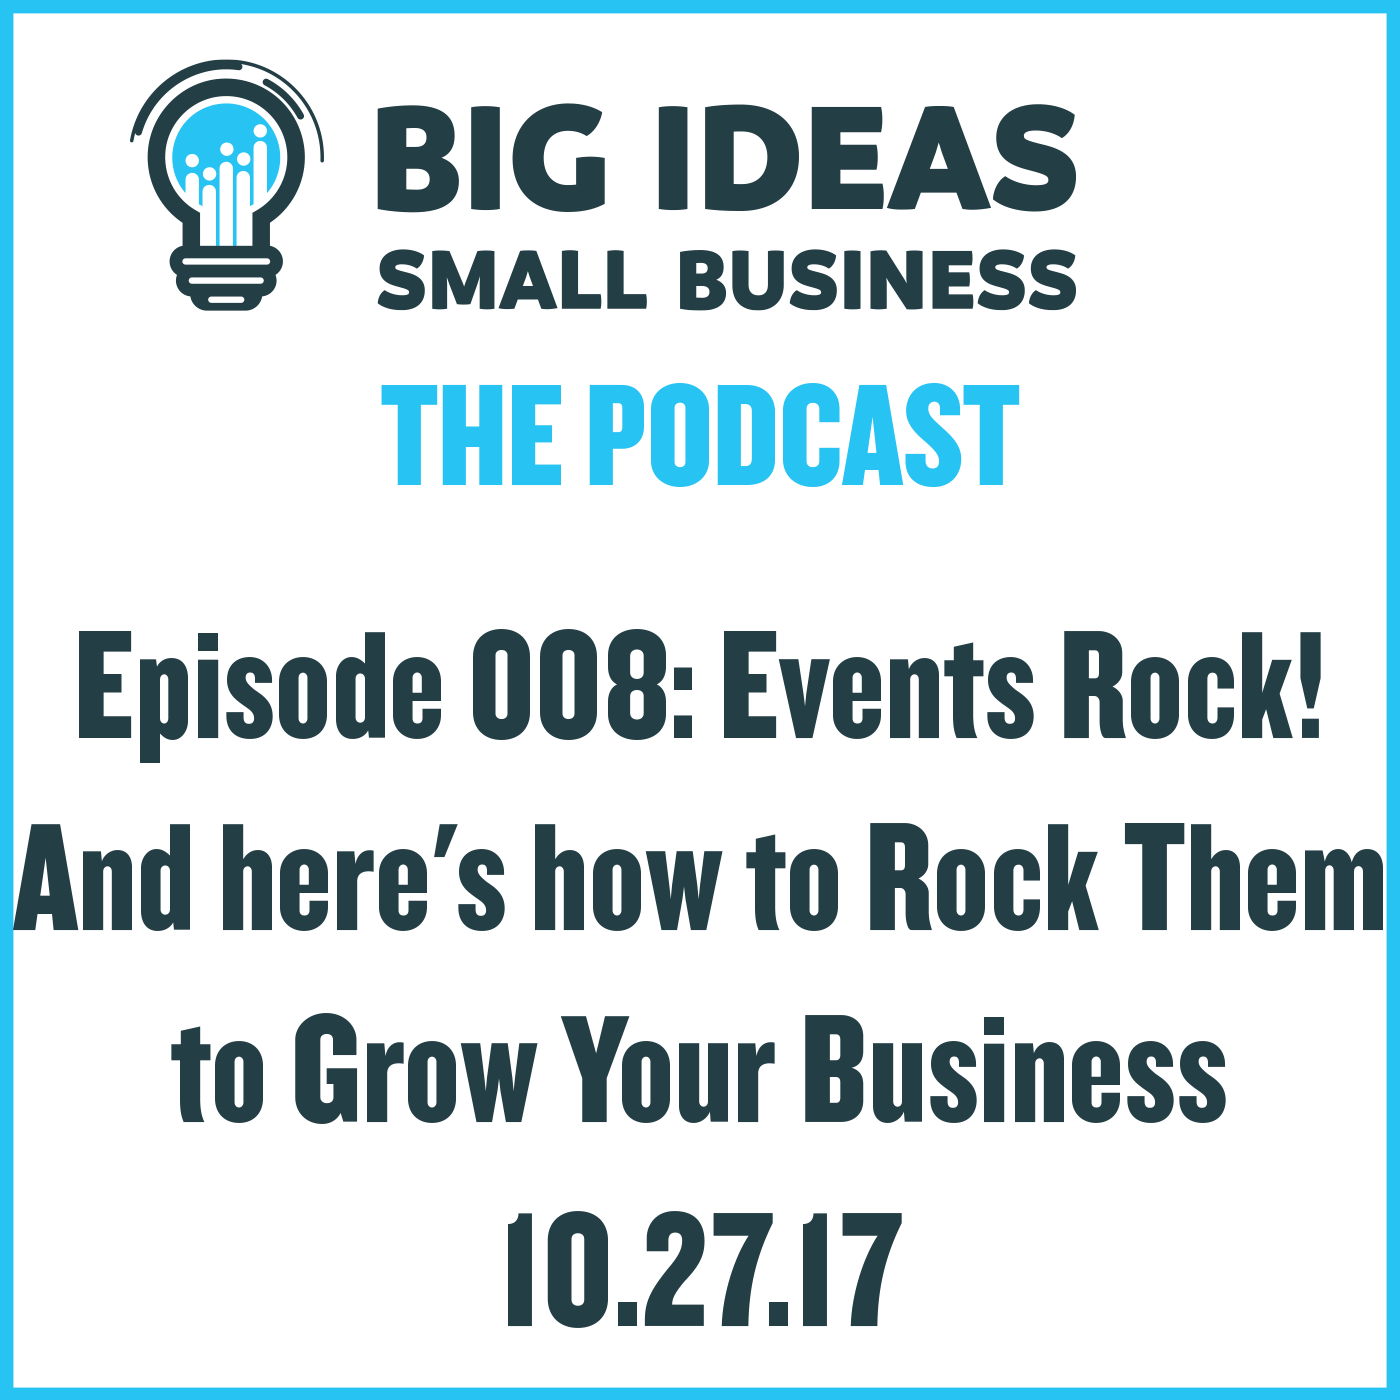 Events Rock! And here's how to Rock Them to Grow Your Business